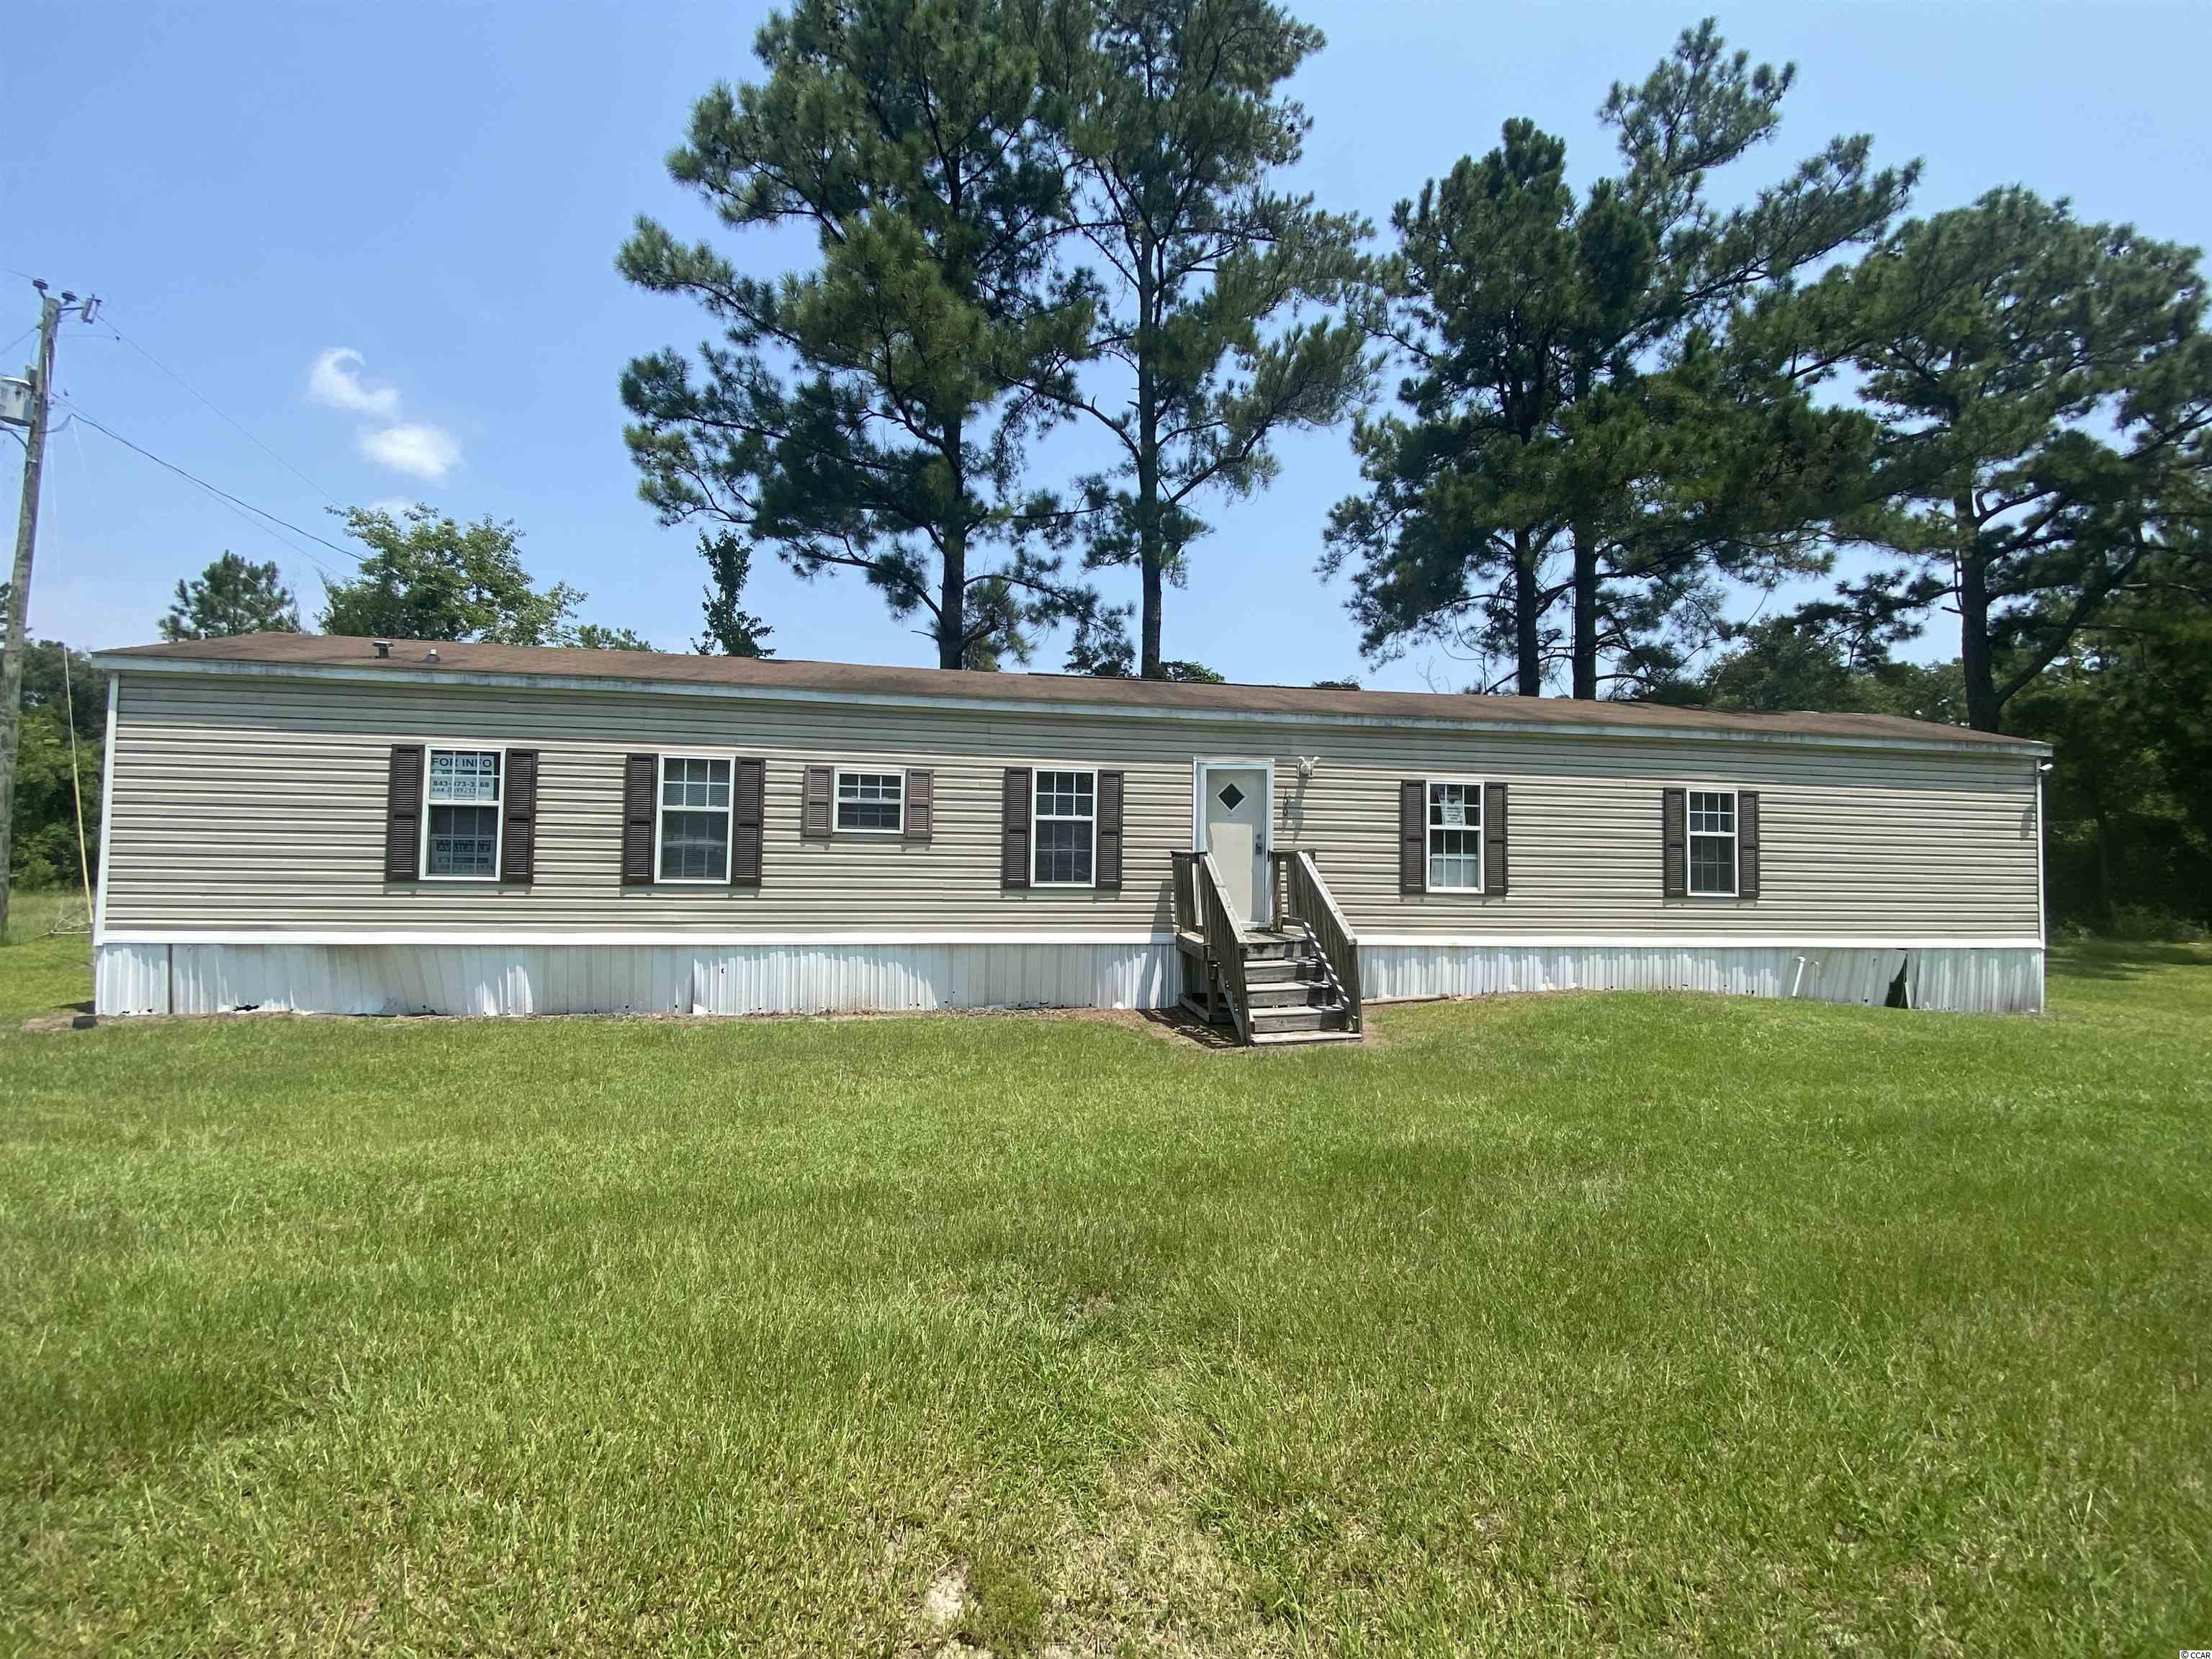 Single wide manufactured home on 2.4 acres. Well cared for three bedroom two bath home with new well and great rural home site.